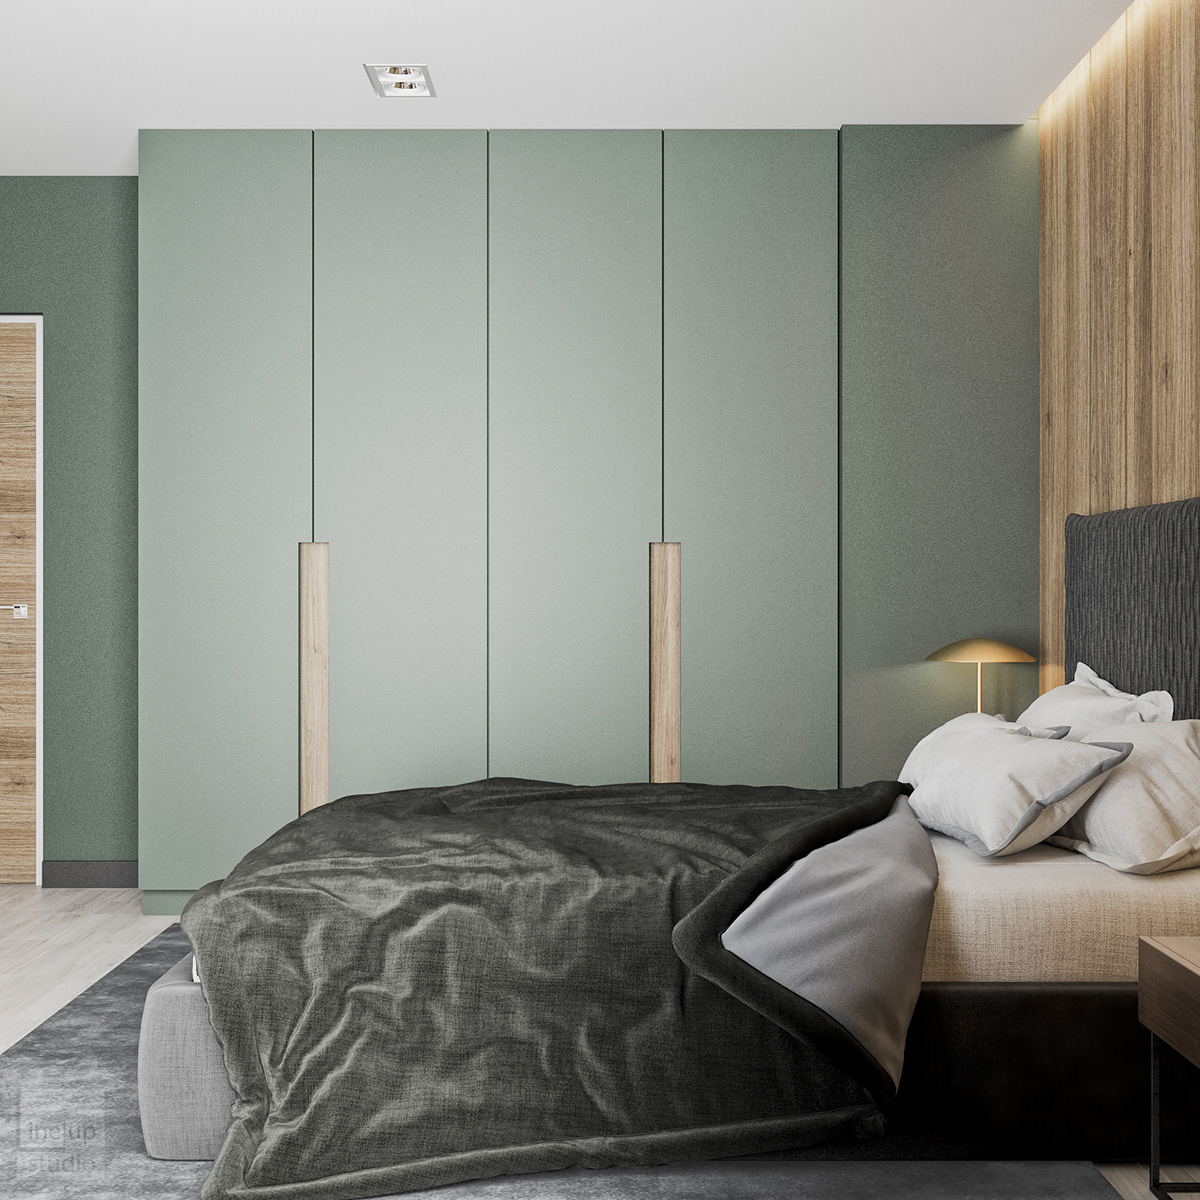 3dsmax vray photoshop cracow poland design Project